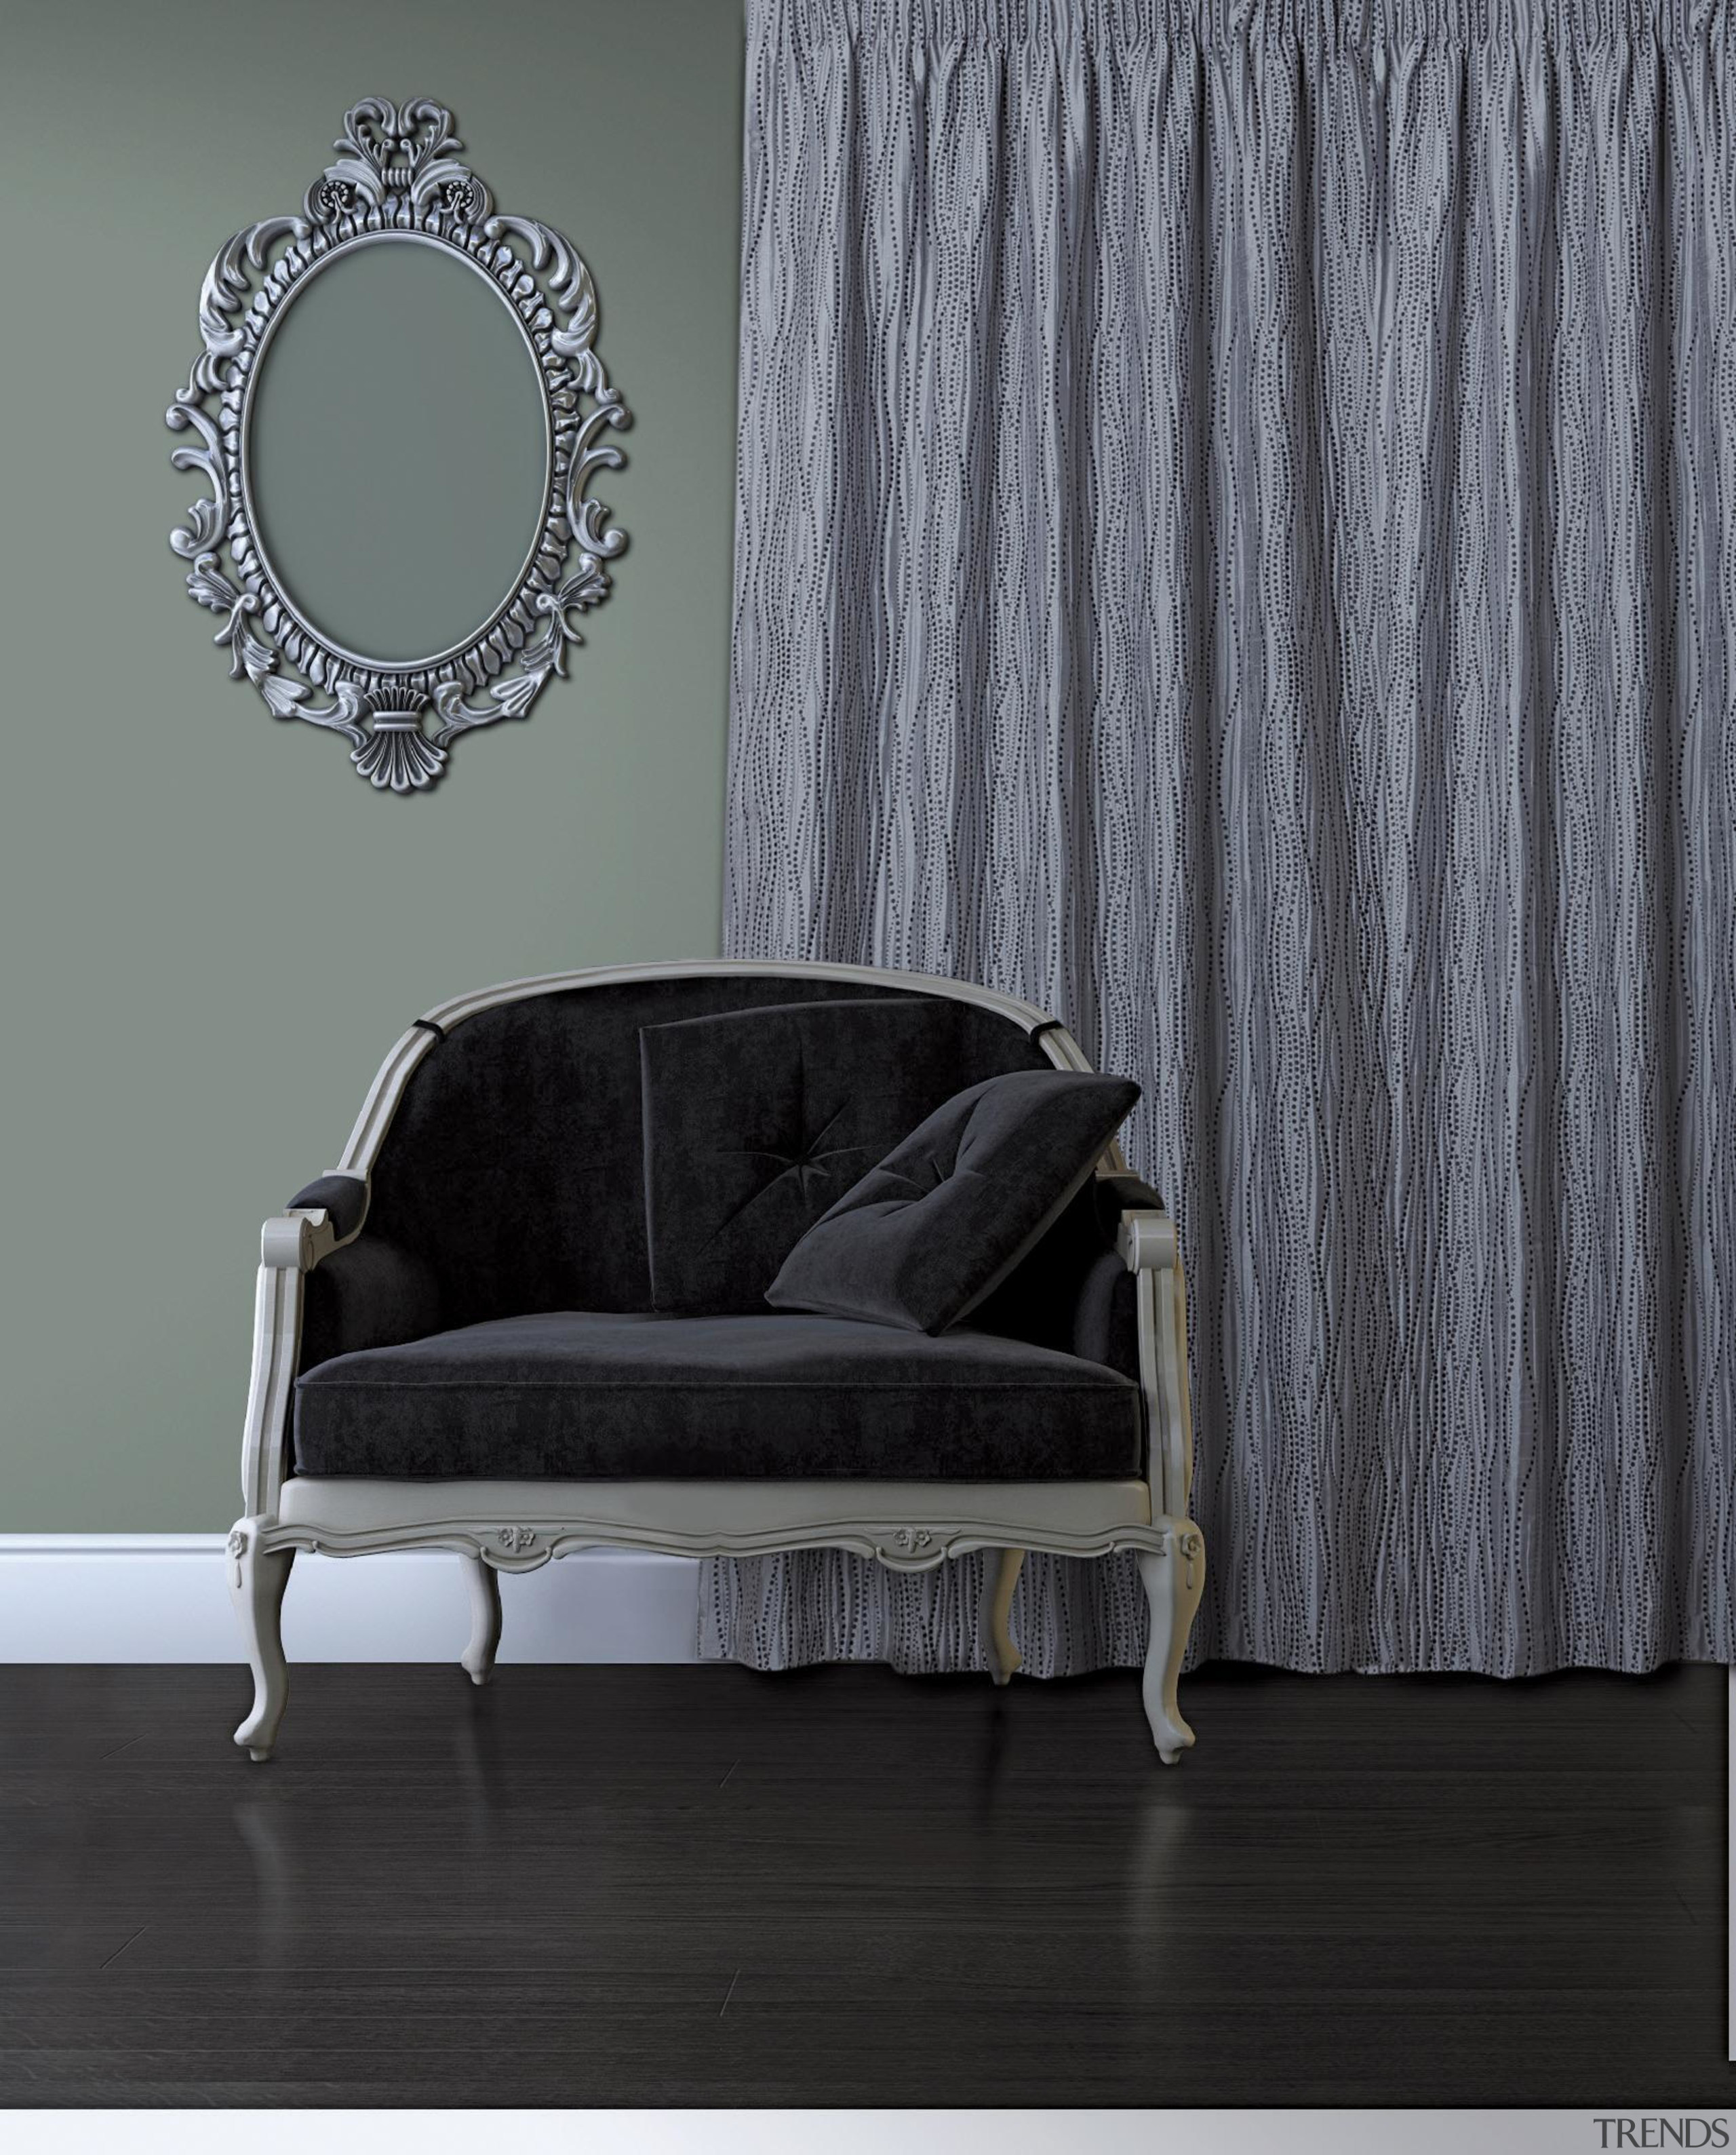 Frequency Room Hydra - chair | couch | chair, couch, curtain, floor, furniture, interior design, table, textile, wall, window, window covering, window treatment, gray, black